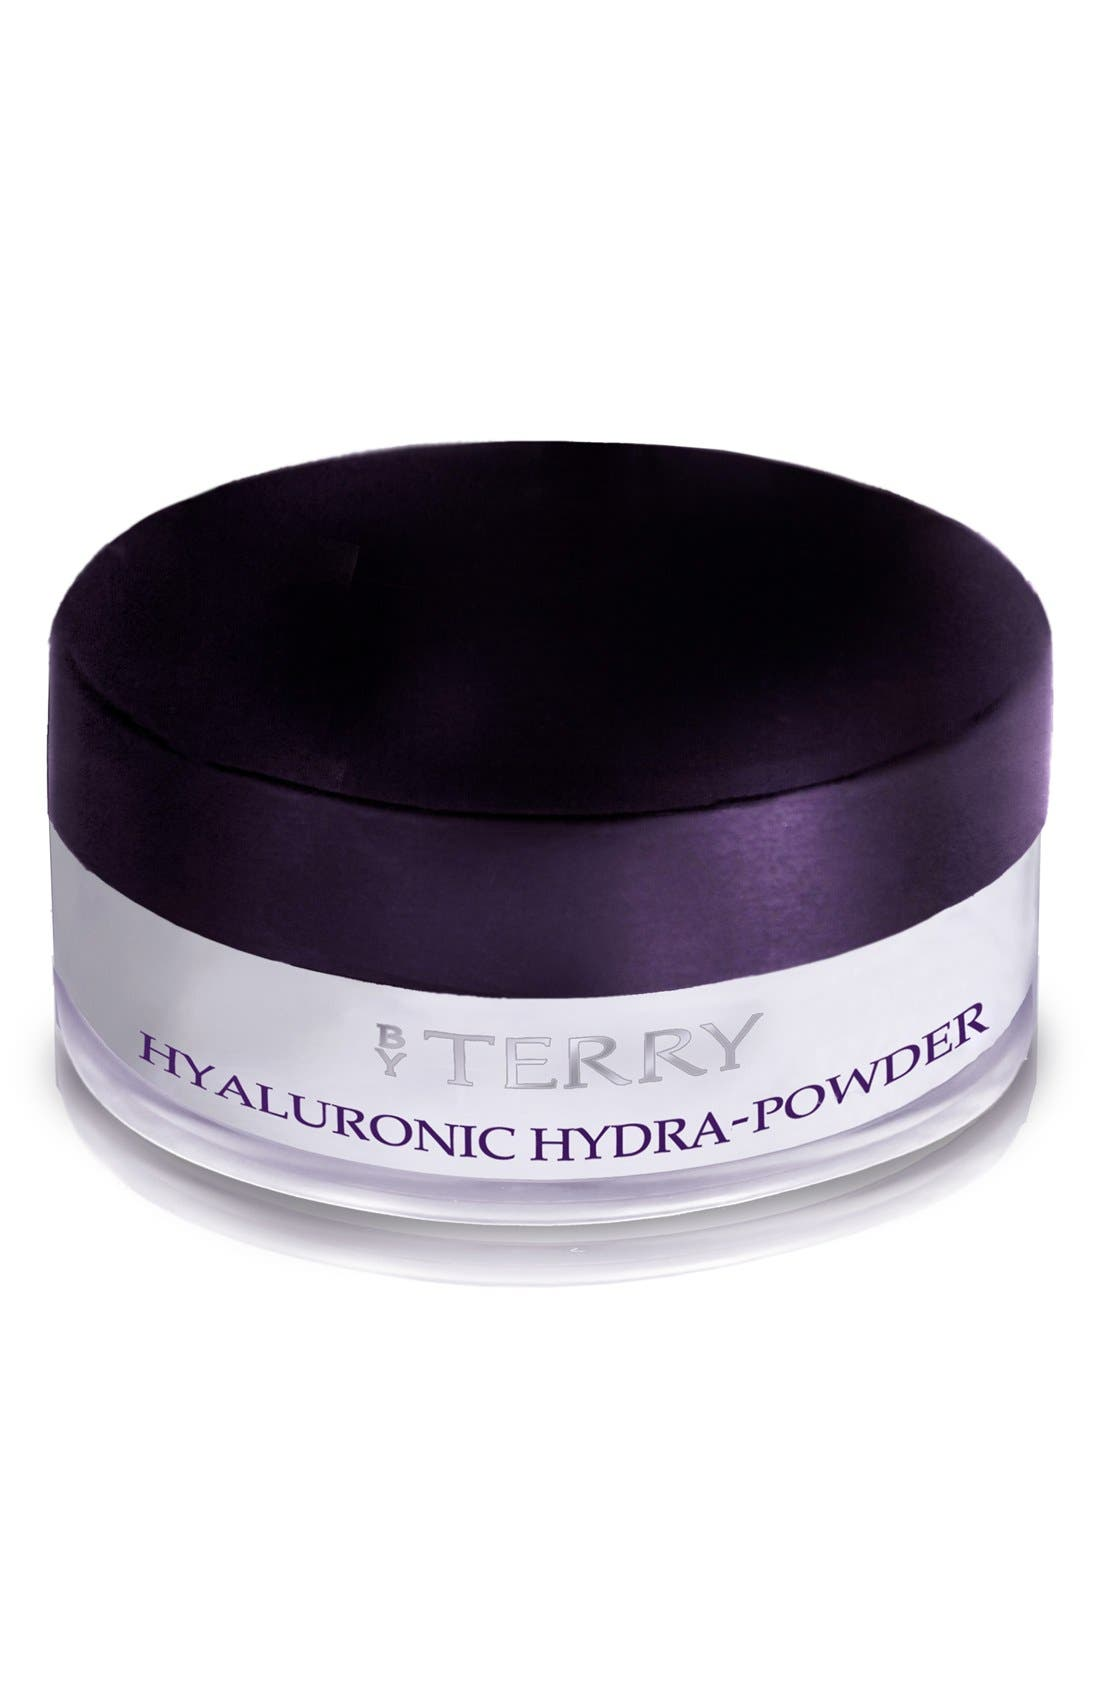 SPACE.NK.apothecary By Terry Hyaluronic Hydra-Powder,                             Main thumbnail 1, color,                             NO COLOR